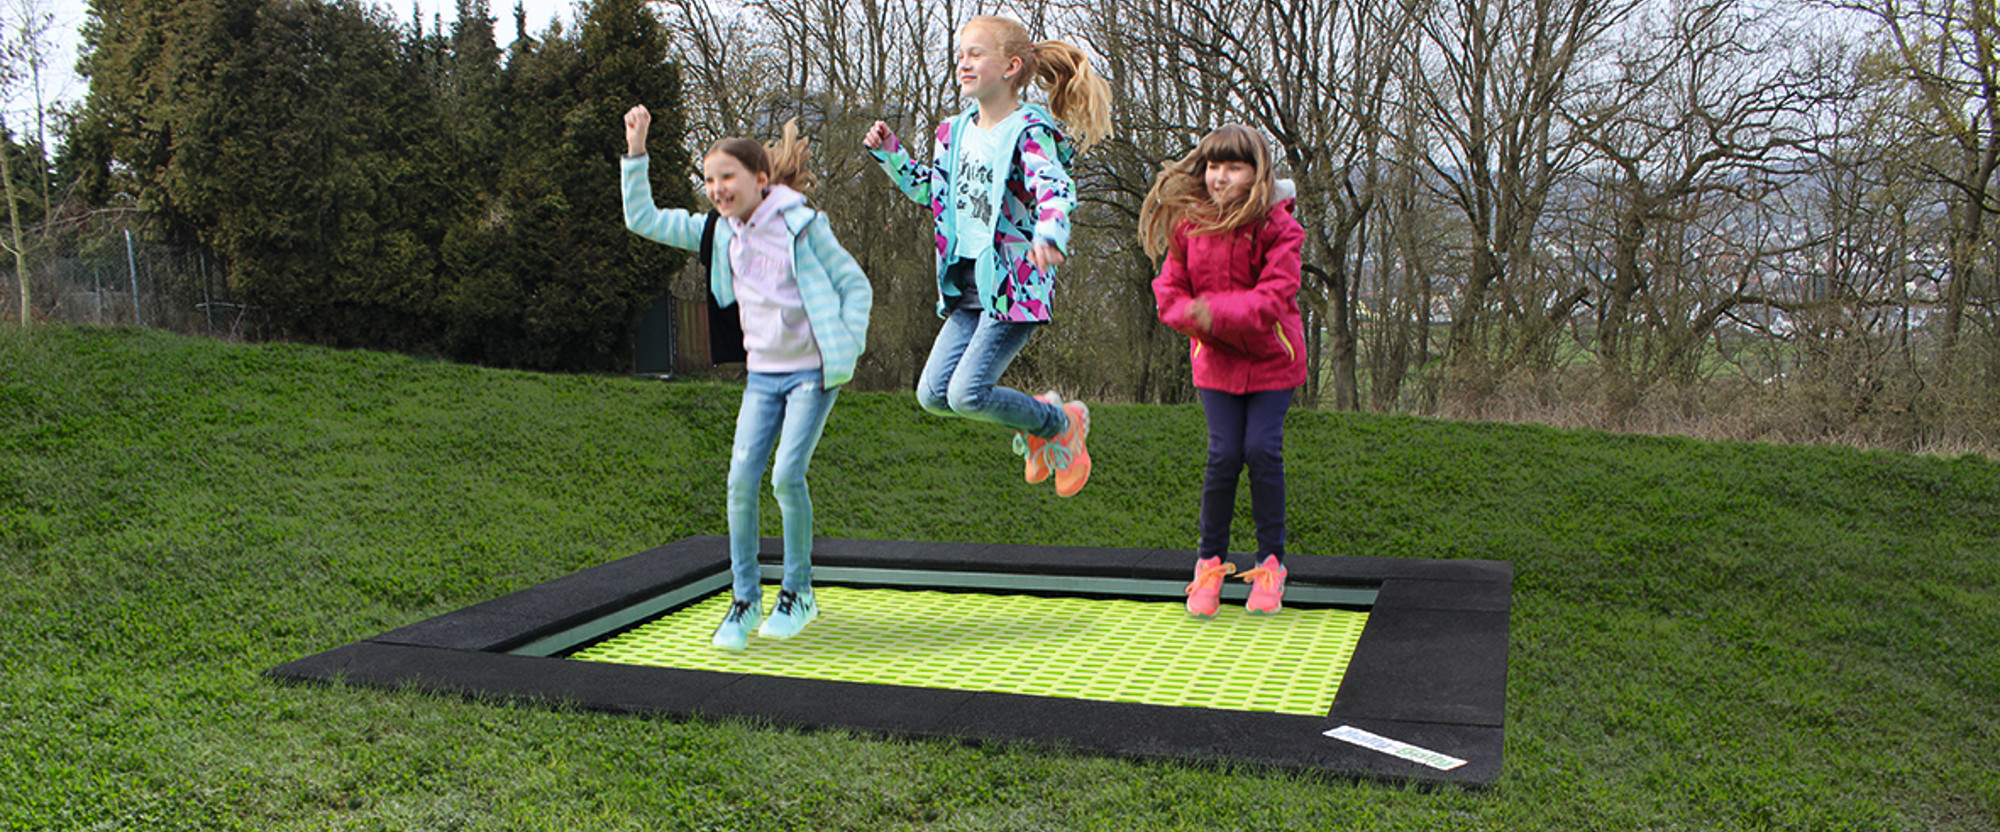 Trampoline with green mat